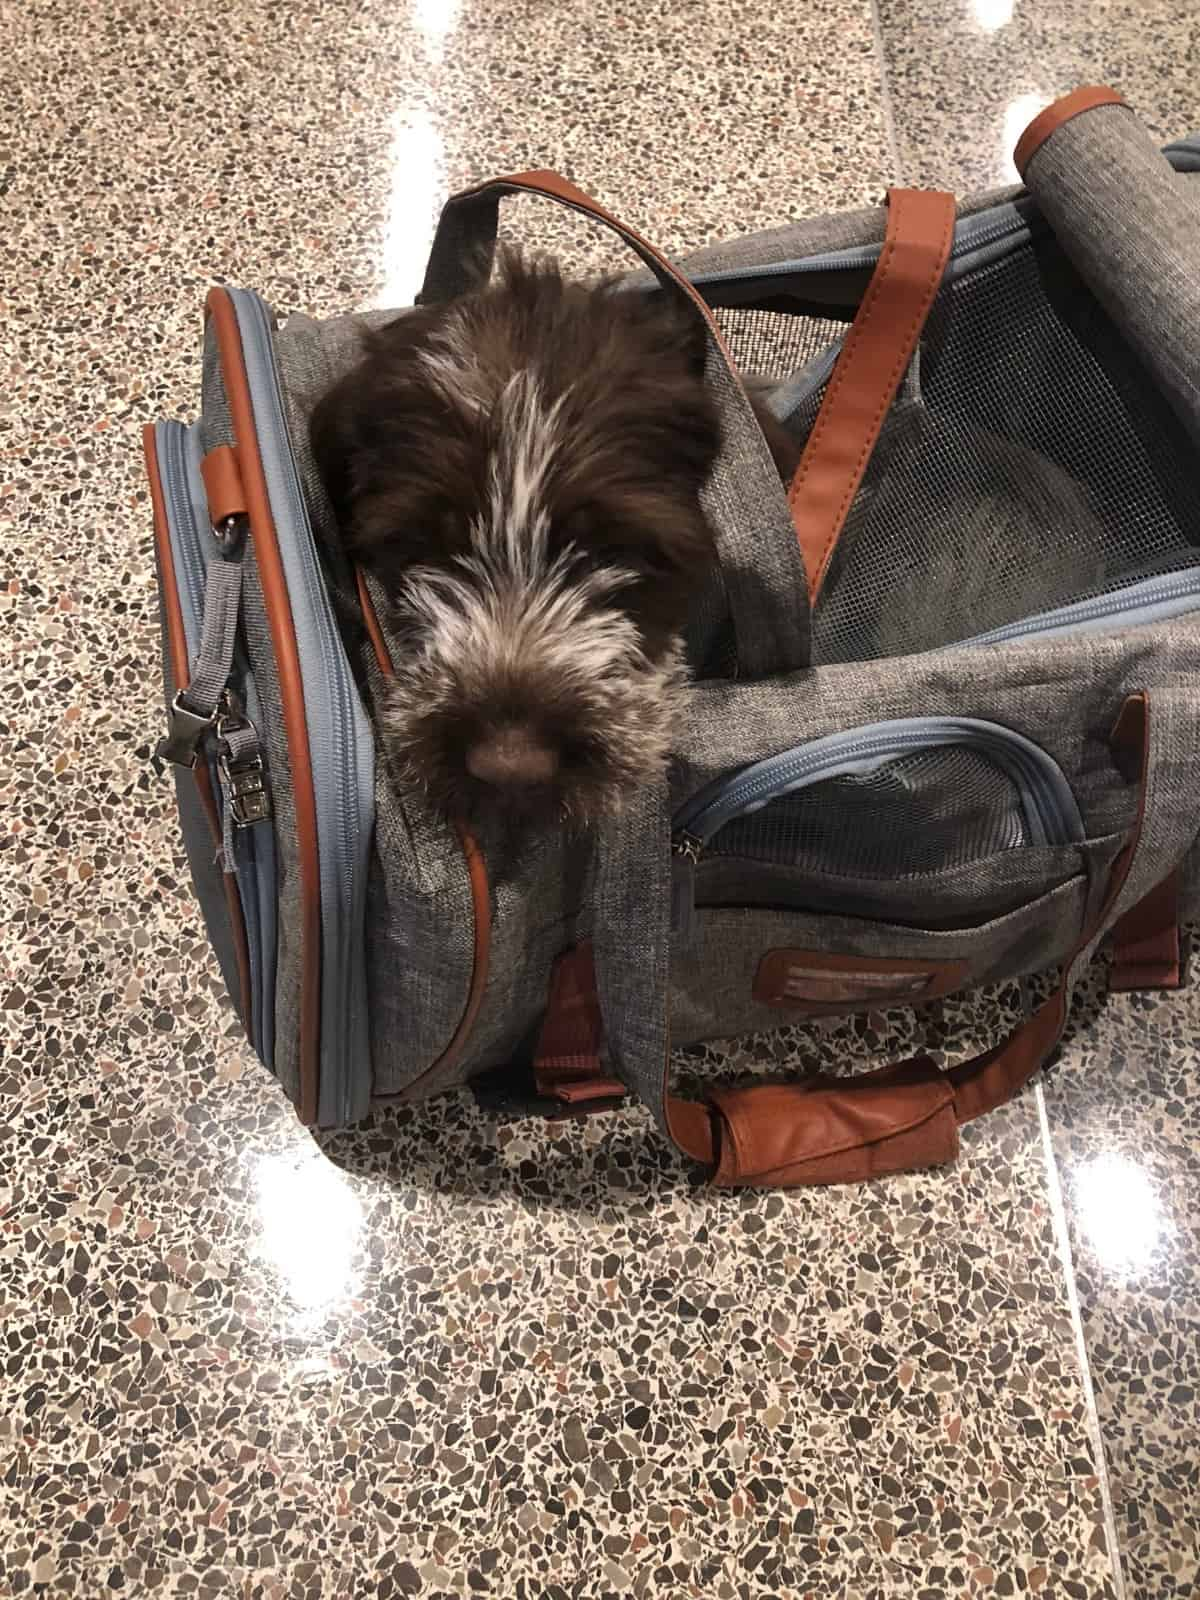 Wirehaired pointing griffon puppy in a small carrier